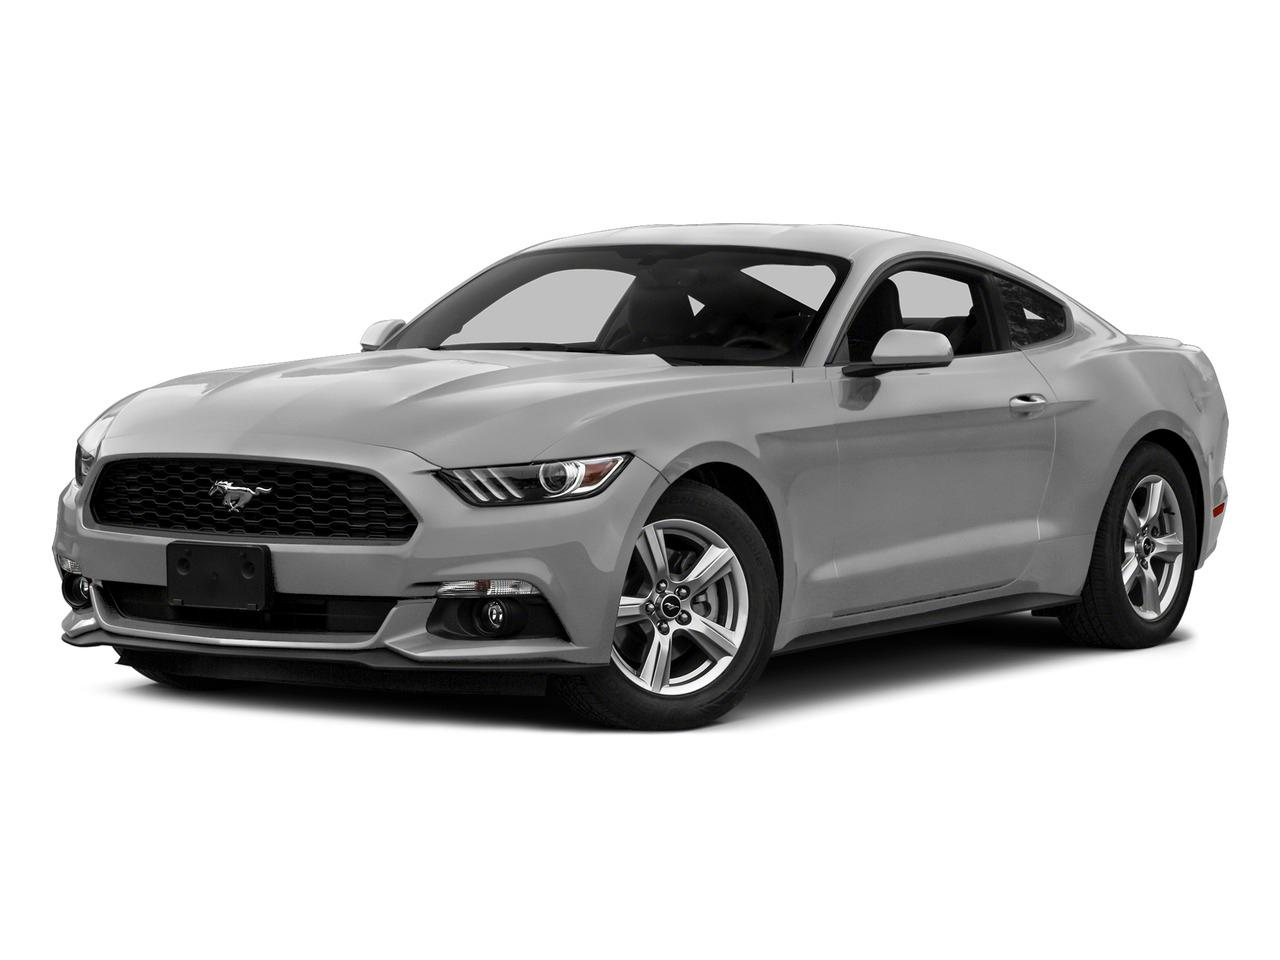 2015 Ford Mustang Vehicle Photo in Akron, OH 44312